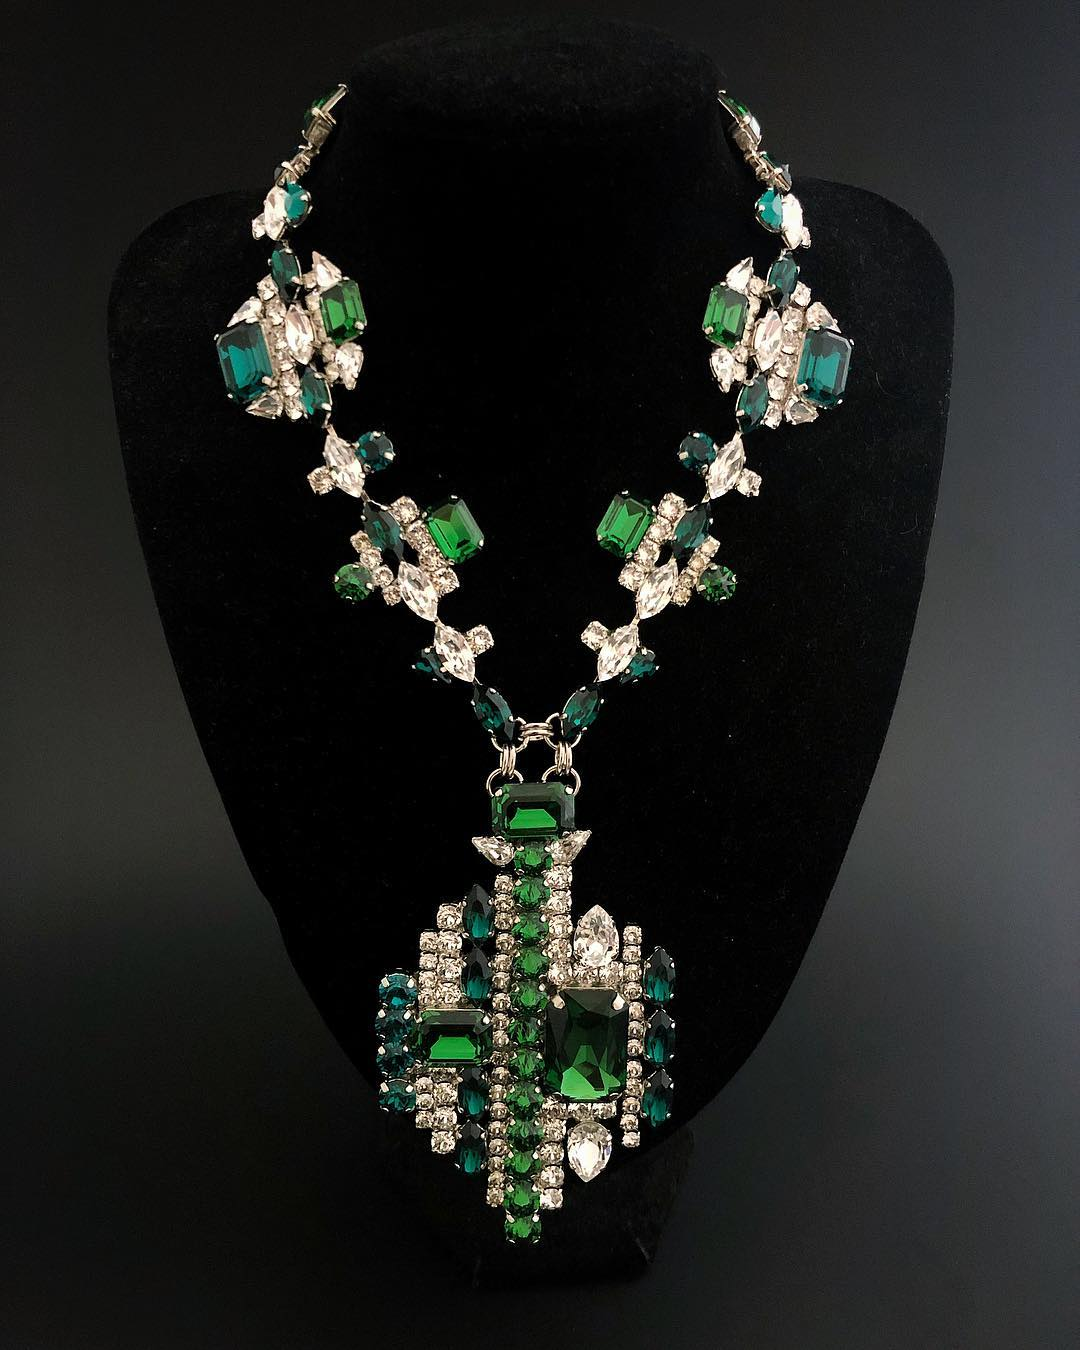 Best Jewelry Online: Emerald Crystal with Clear Rhinestones Necklace